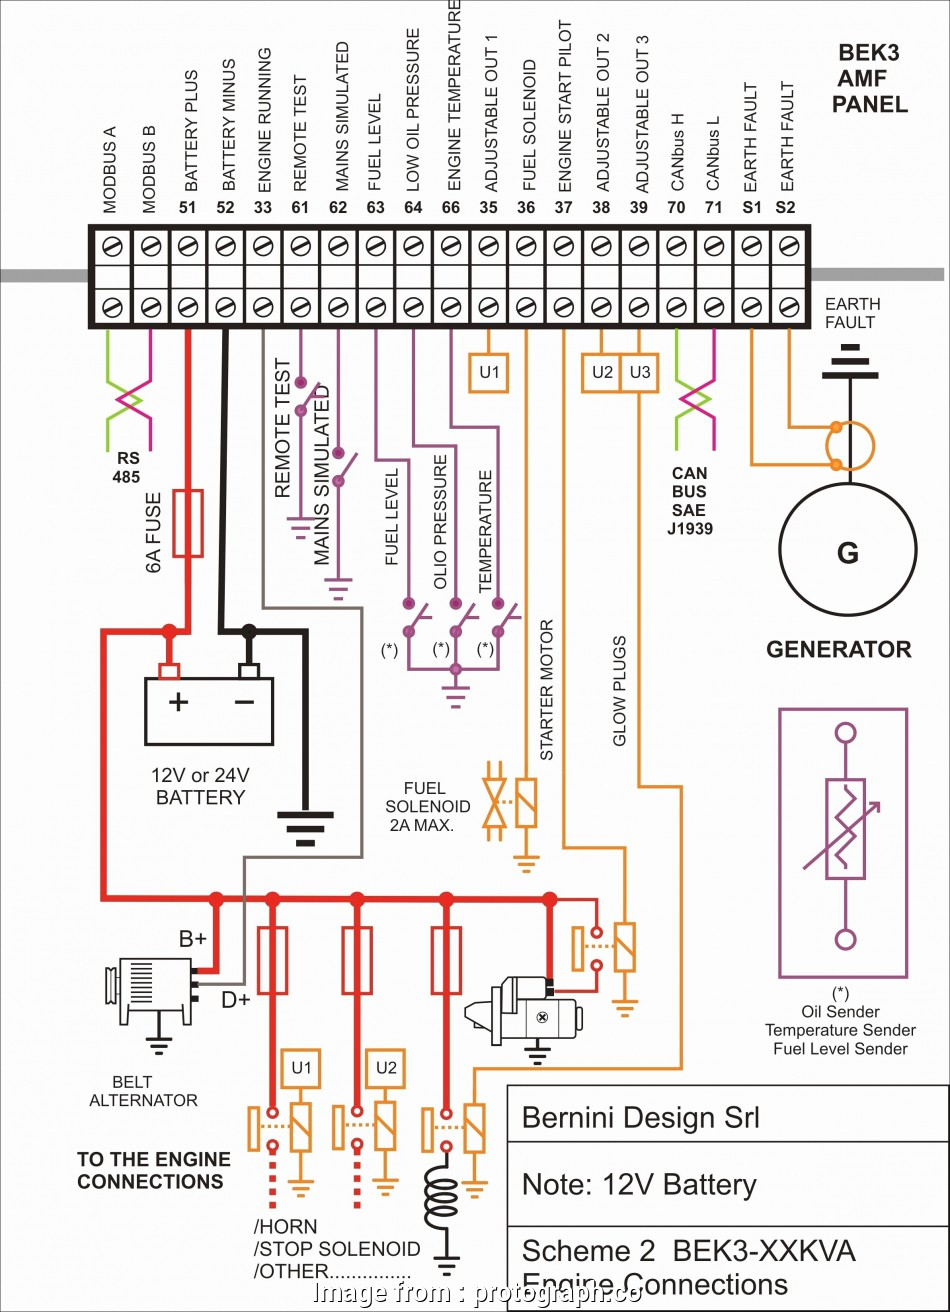 20 Por Home Electrical Wiring Techniques Galleries ... A Mopar Wiring Diagram on